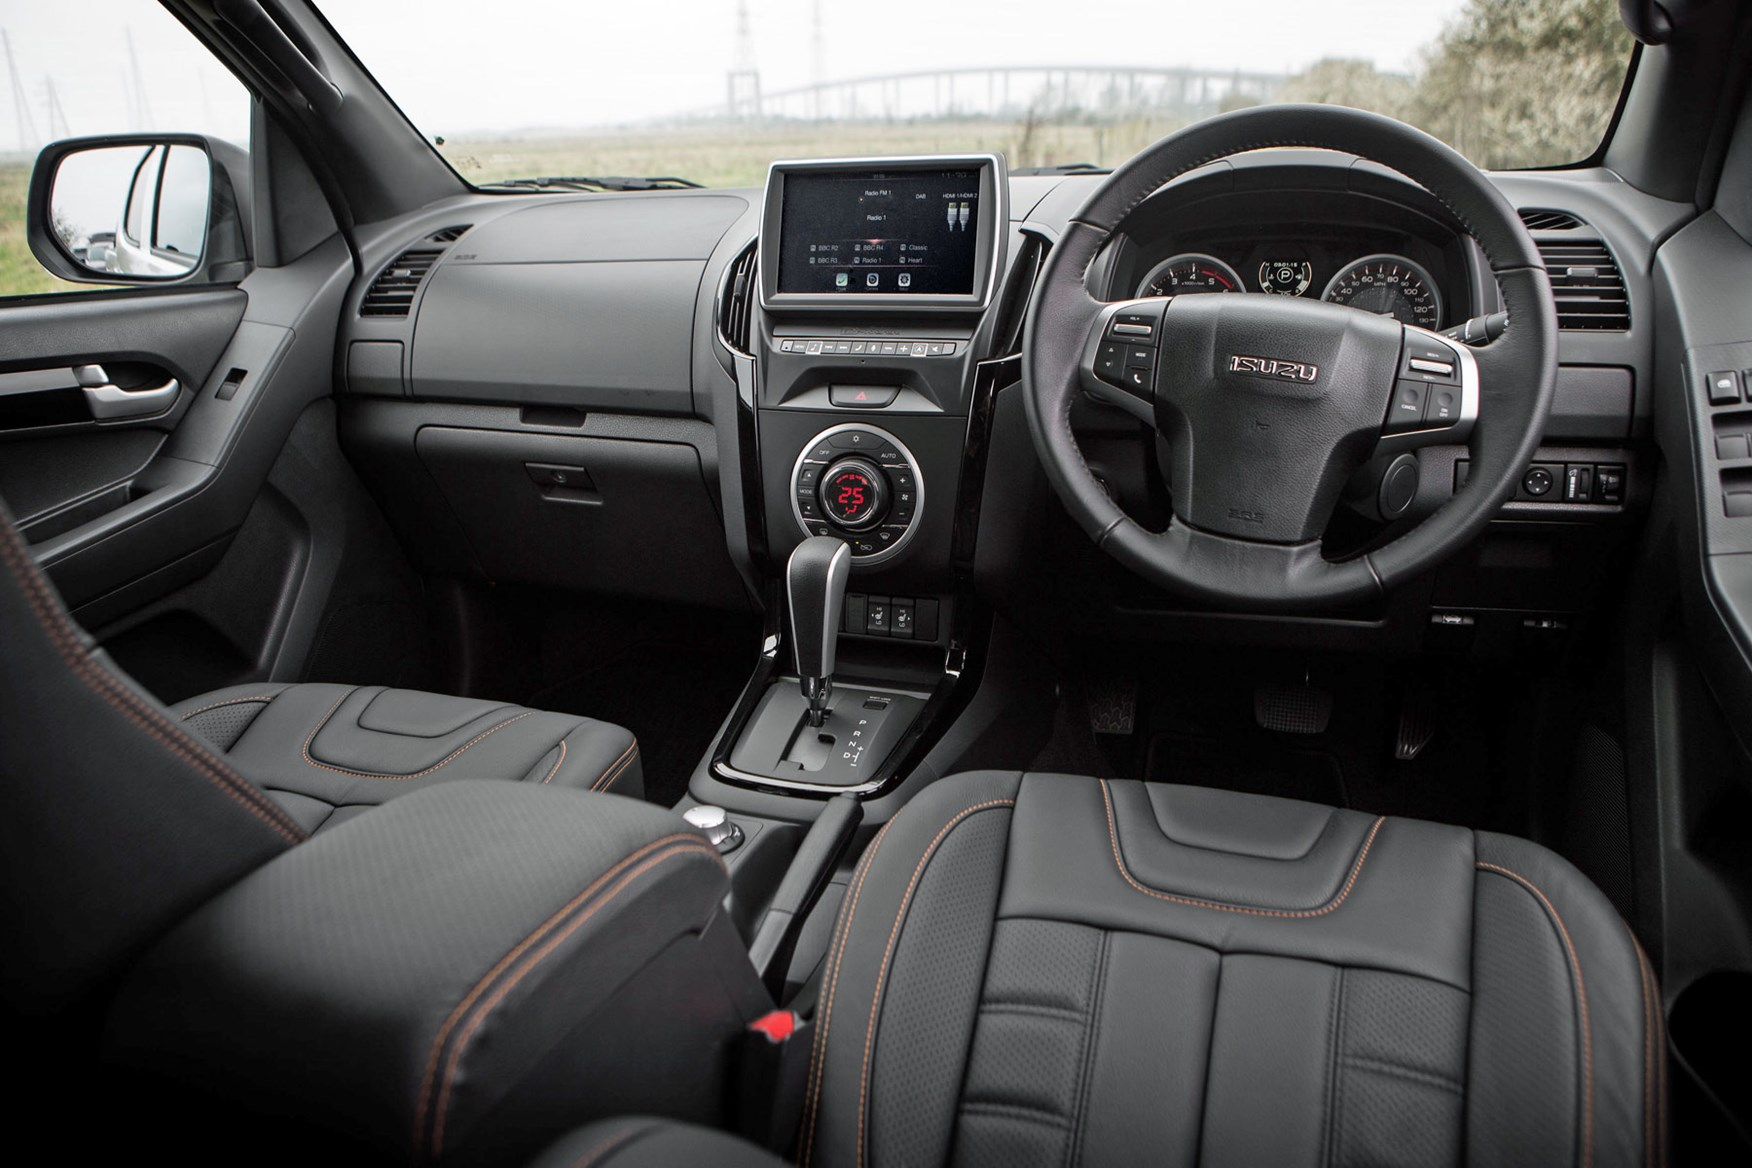 Isuzu D-Max Blade 1.9 review - cab interior including new integrated touchscreen infotainment system